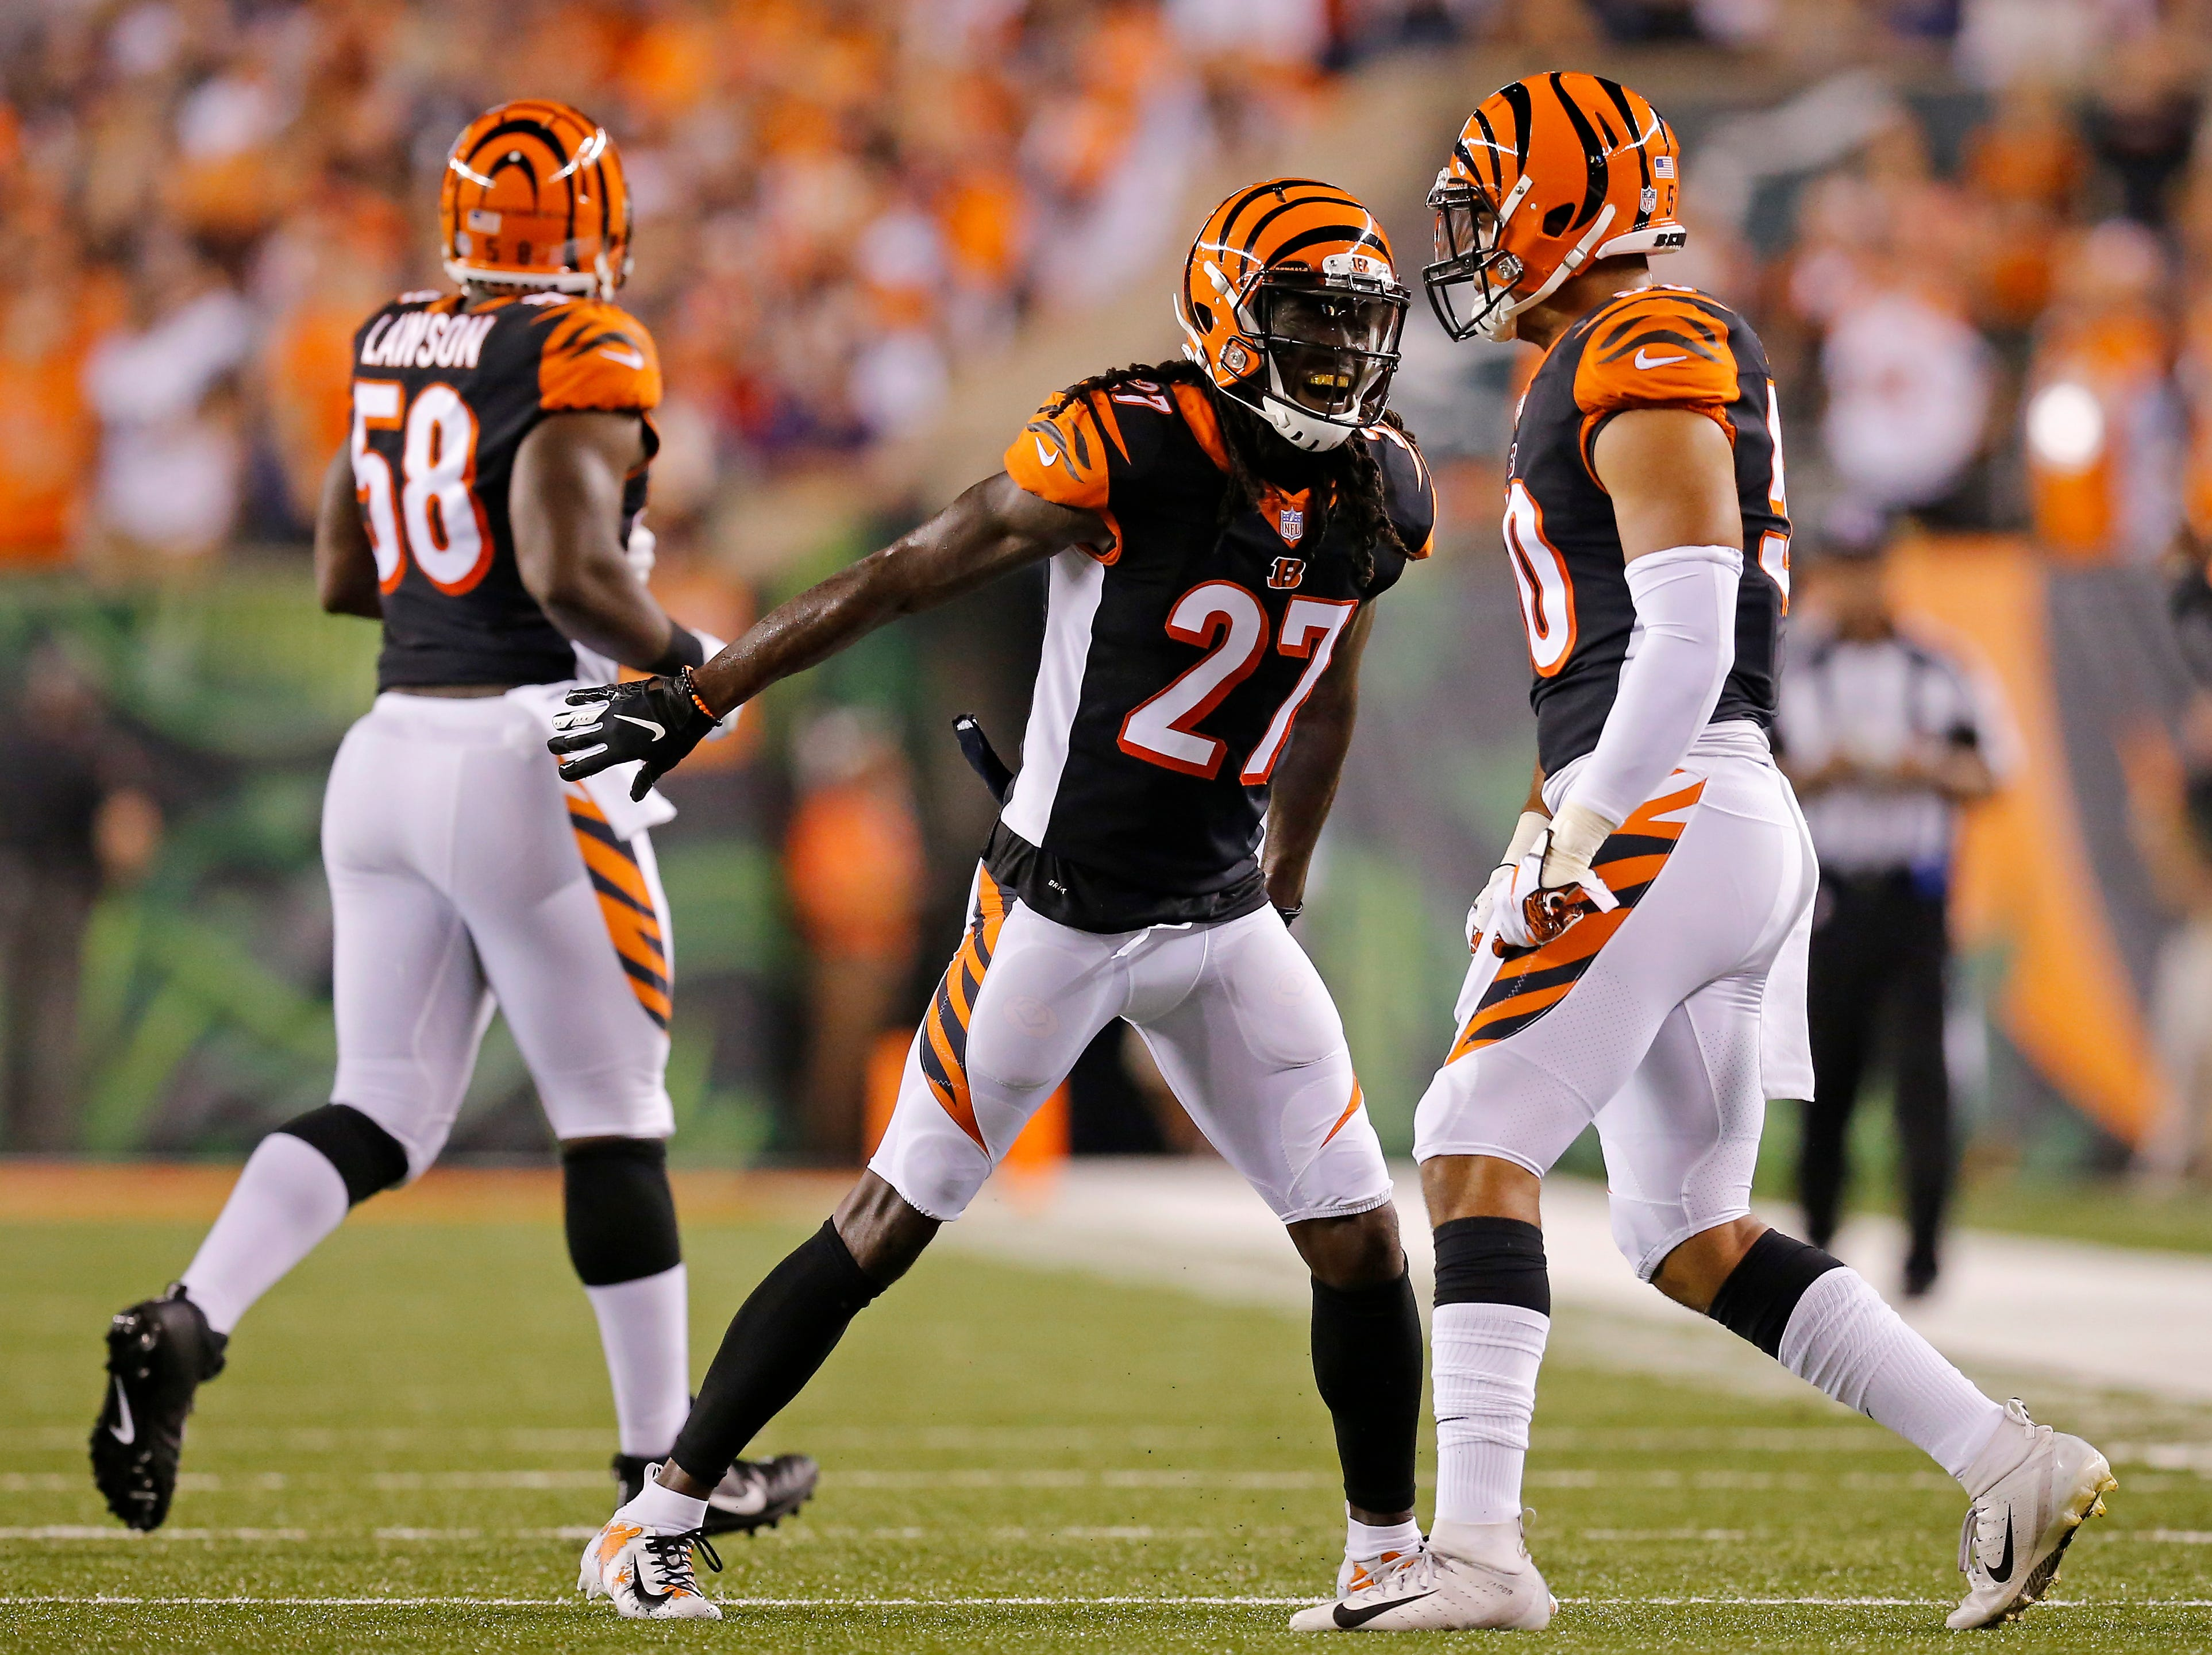 Cincinnati Bengals defensive back Dre Kirkpatrick (27) celebrates a defensive stop with linebacker Jordan Evans (50) in the first quarter of the NFL Week 2 game between the Cincinnati Bengals and the Baltimore Ravens at Paul Brown Stadium in downtown Cincinnati on Thursday, Sept. 13, 2018. The Bengals led 28-14 at halftime.